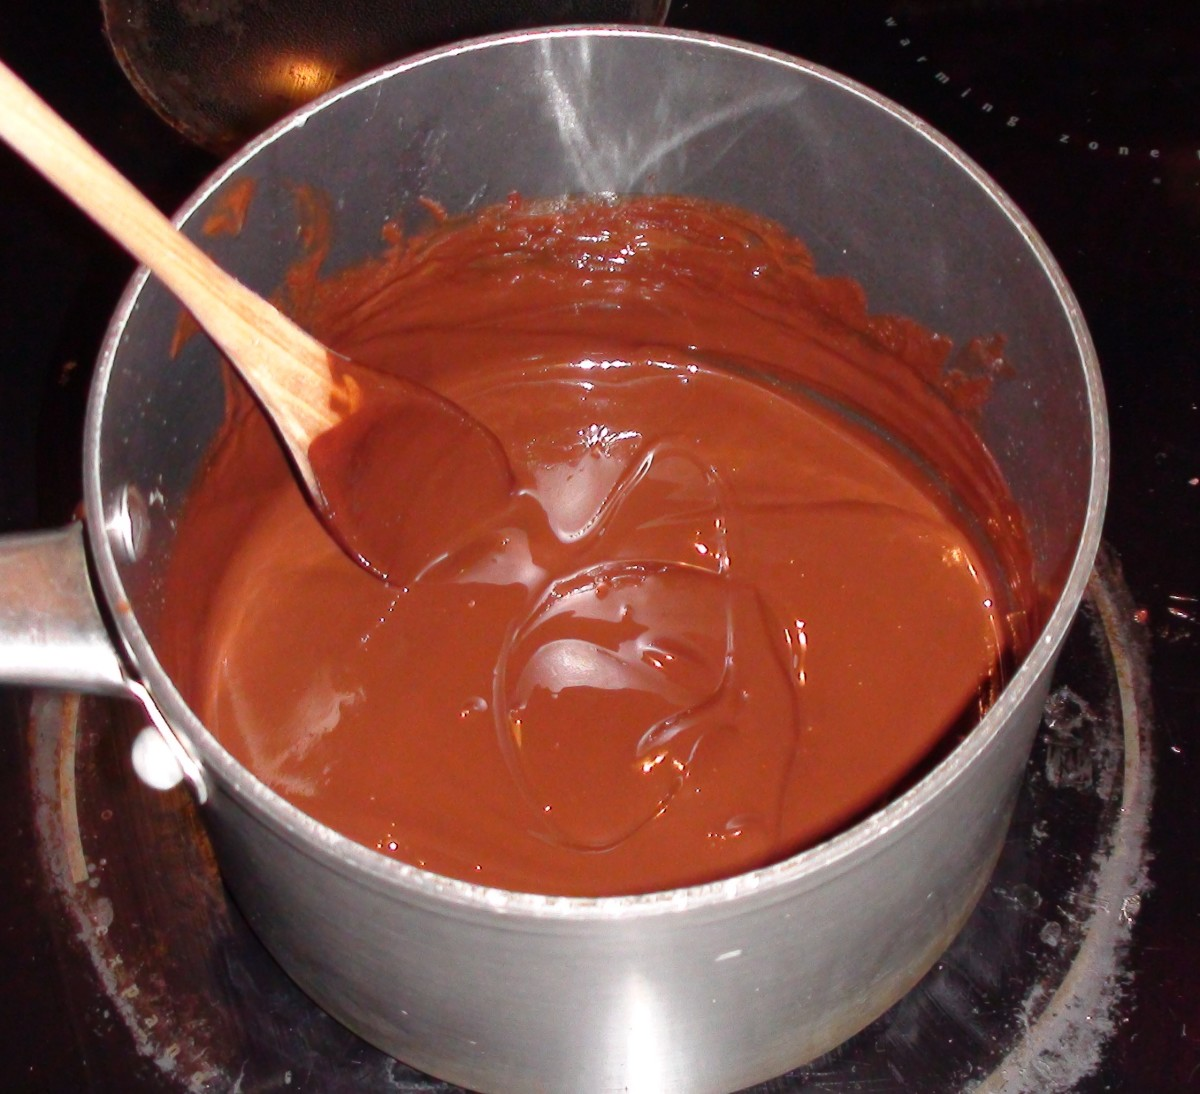 2. Melt chocolate, butter, and coconut oil together and mix.